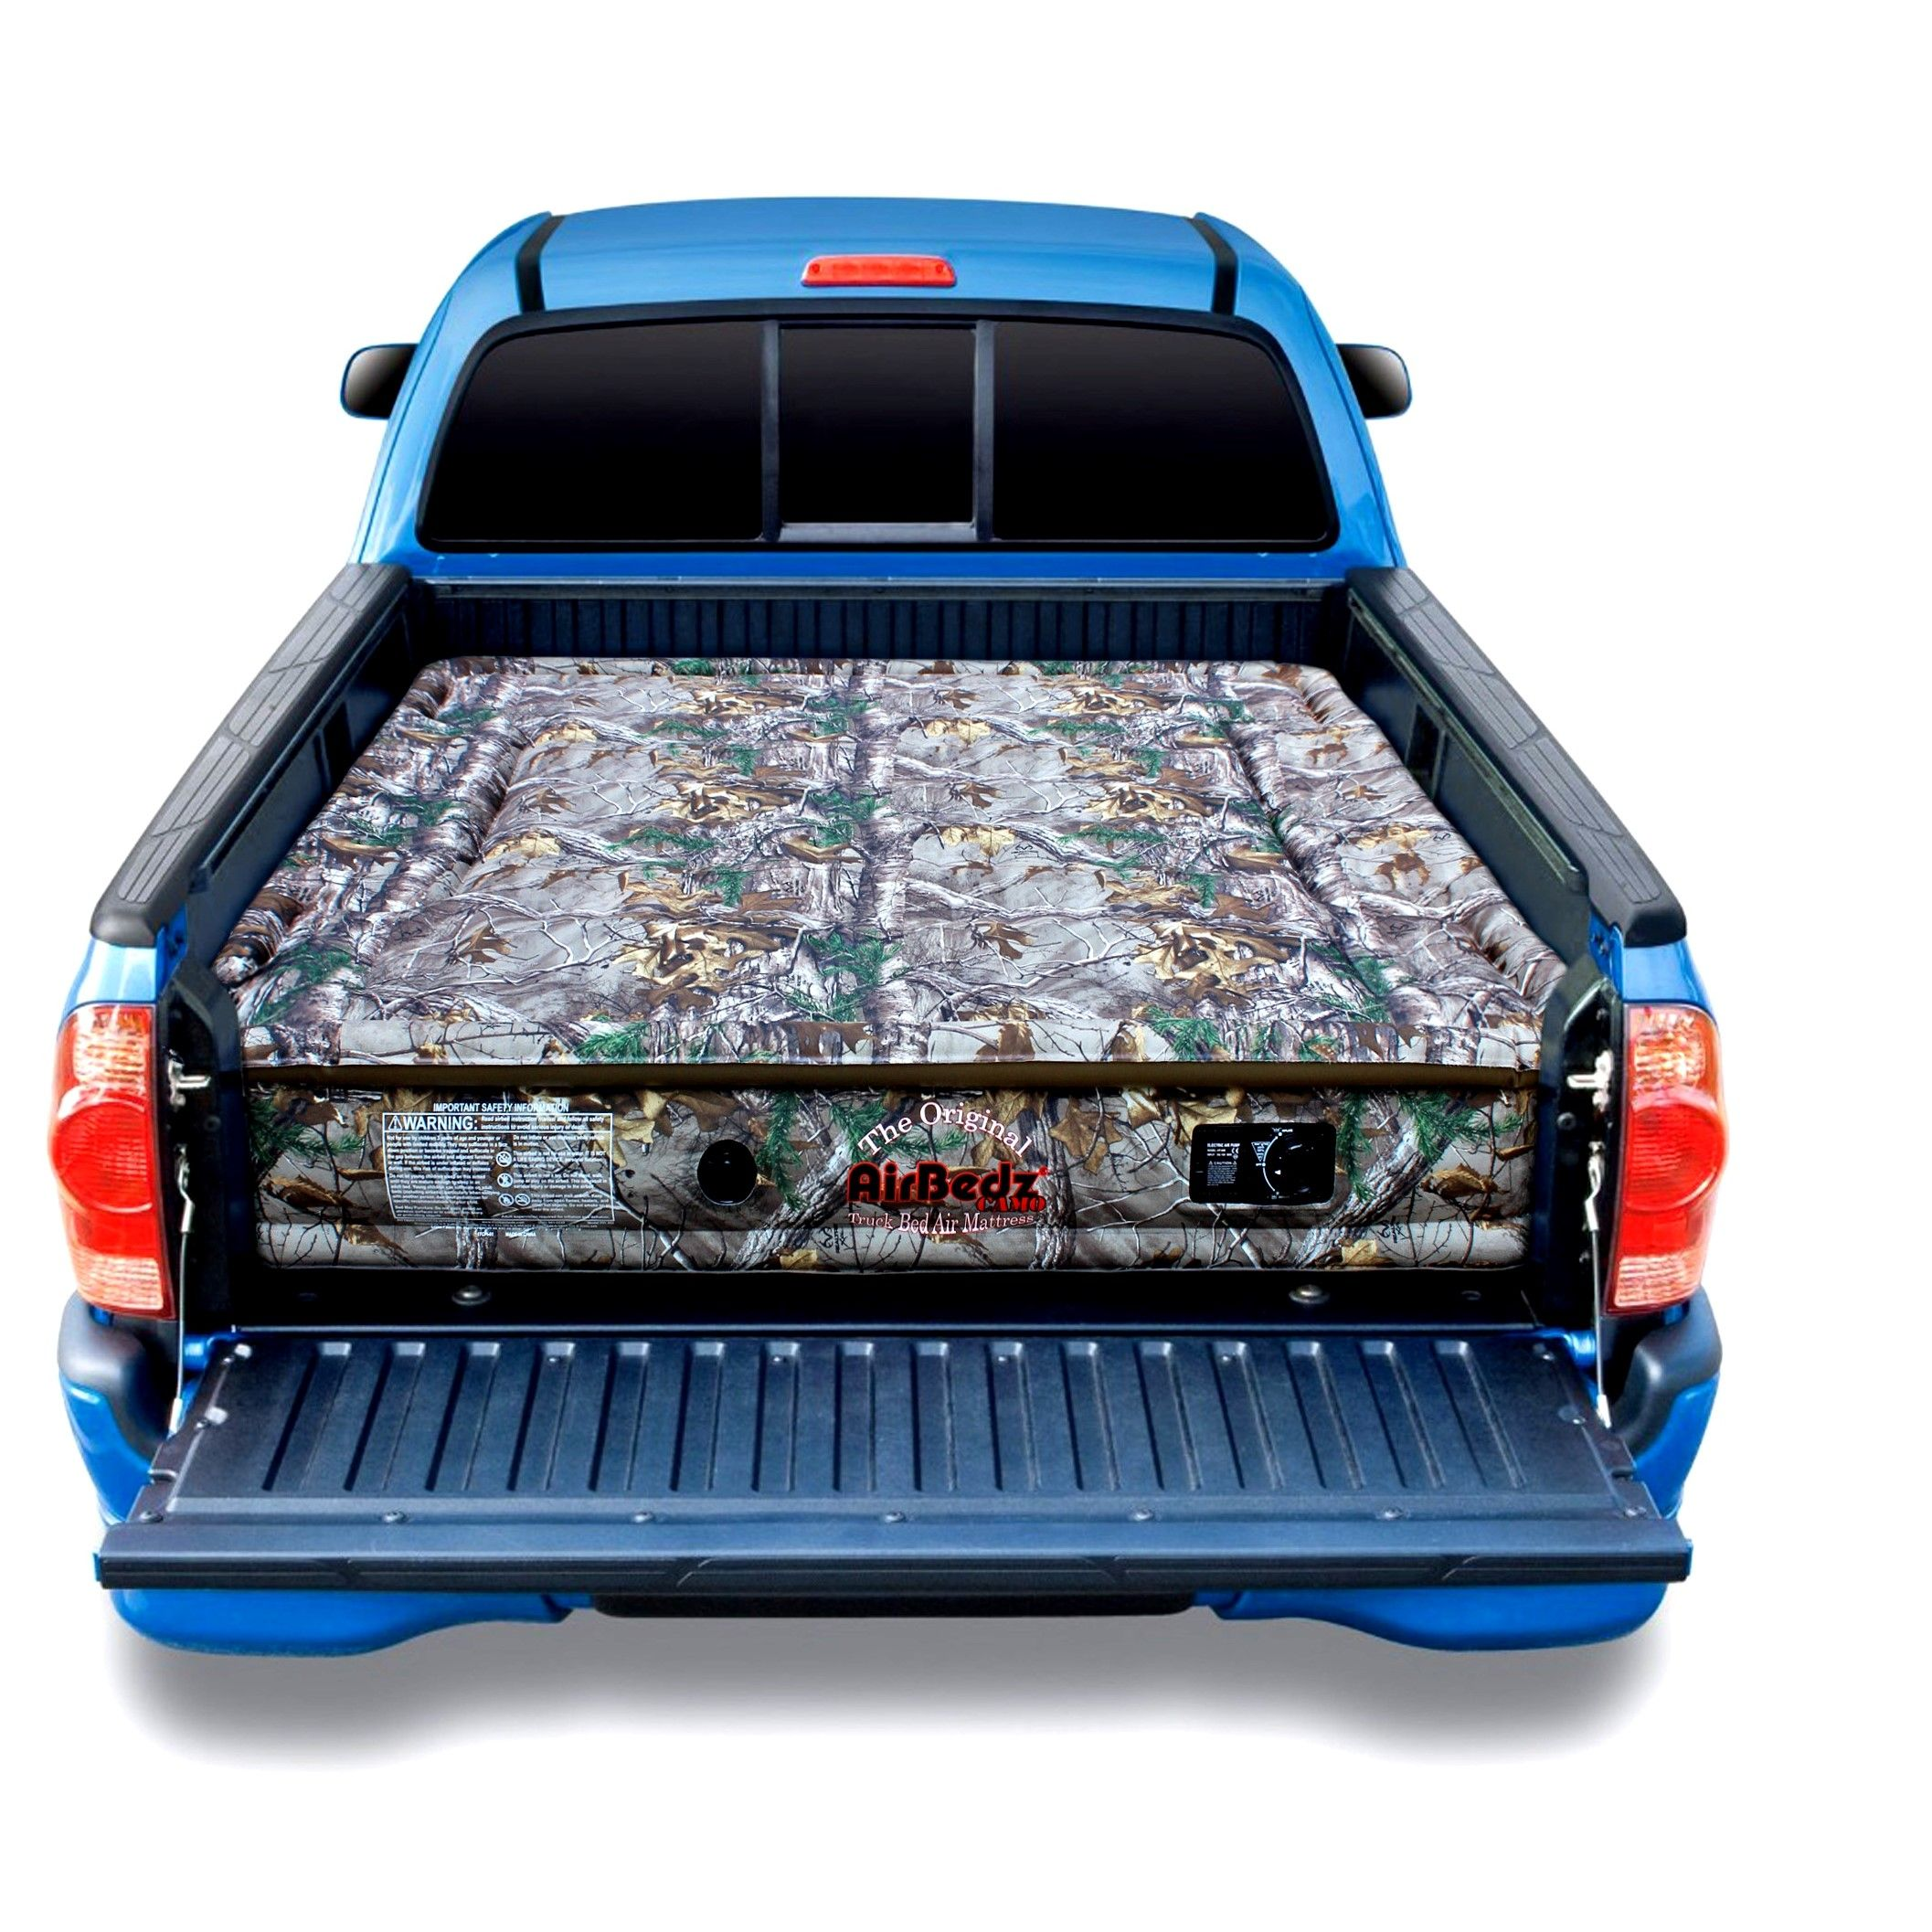 For the outdoor enthusiasts, AirBedz Original Truck Bed